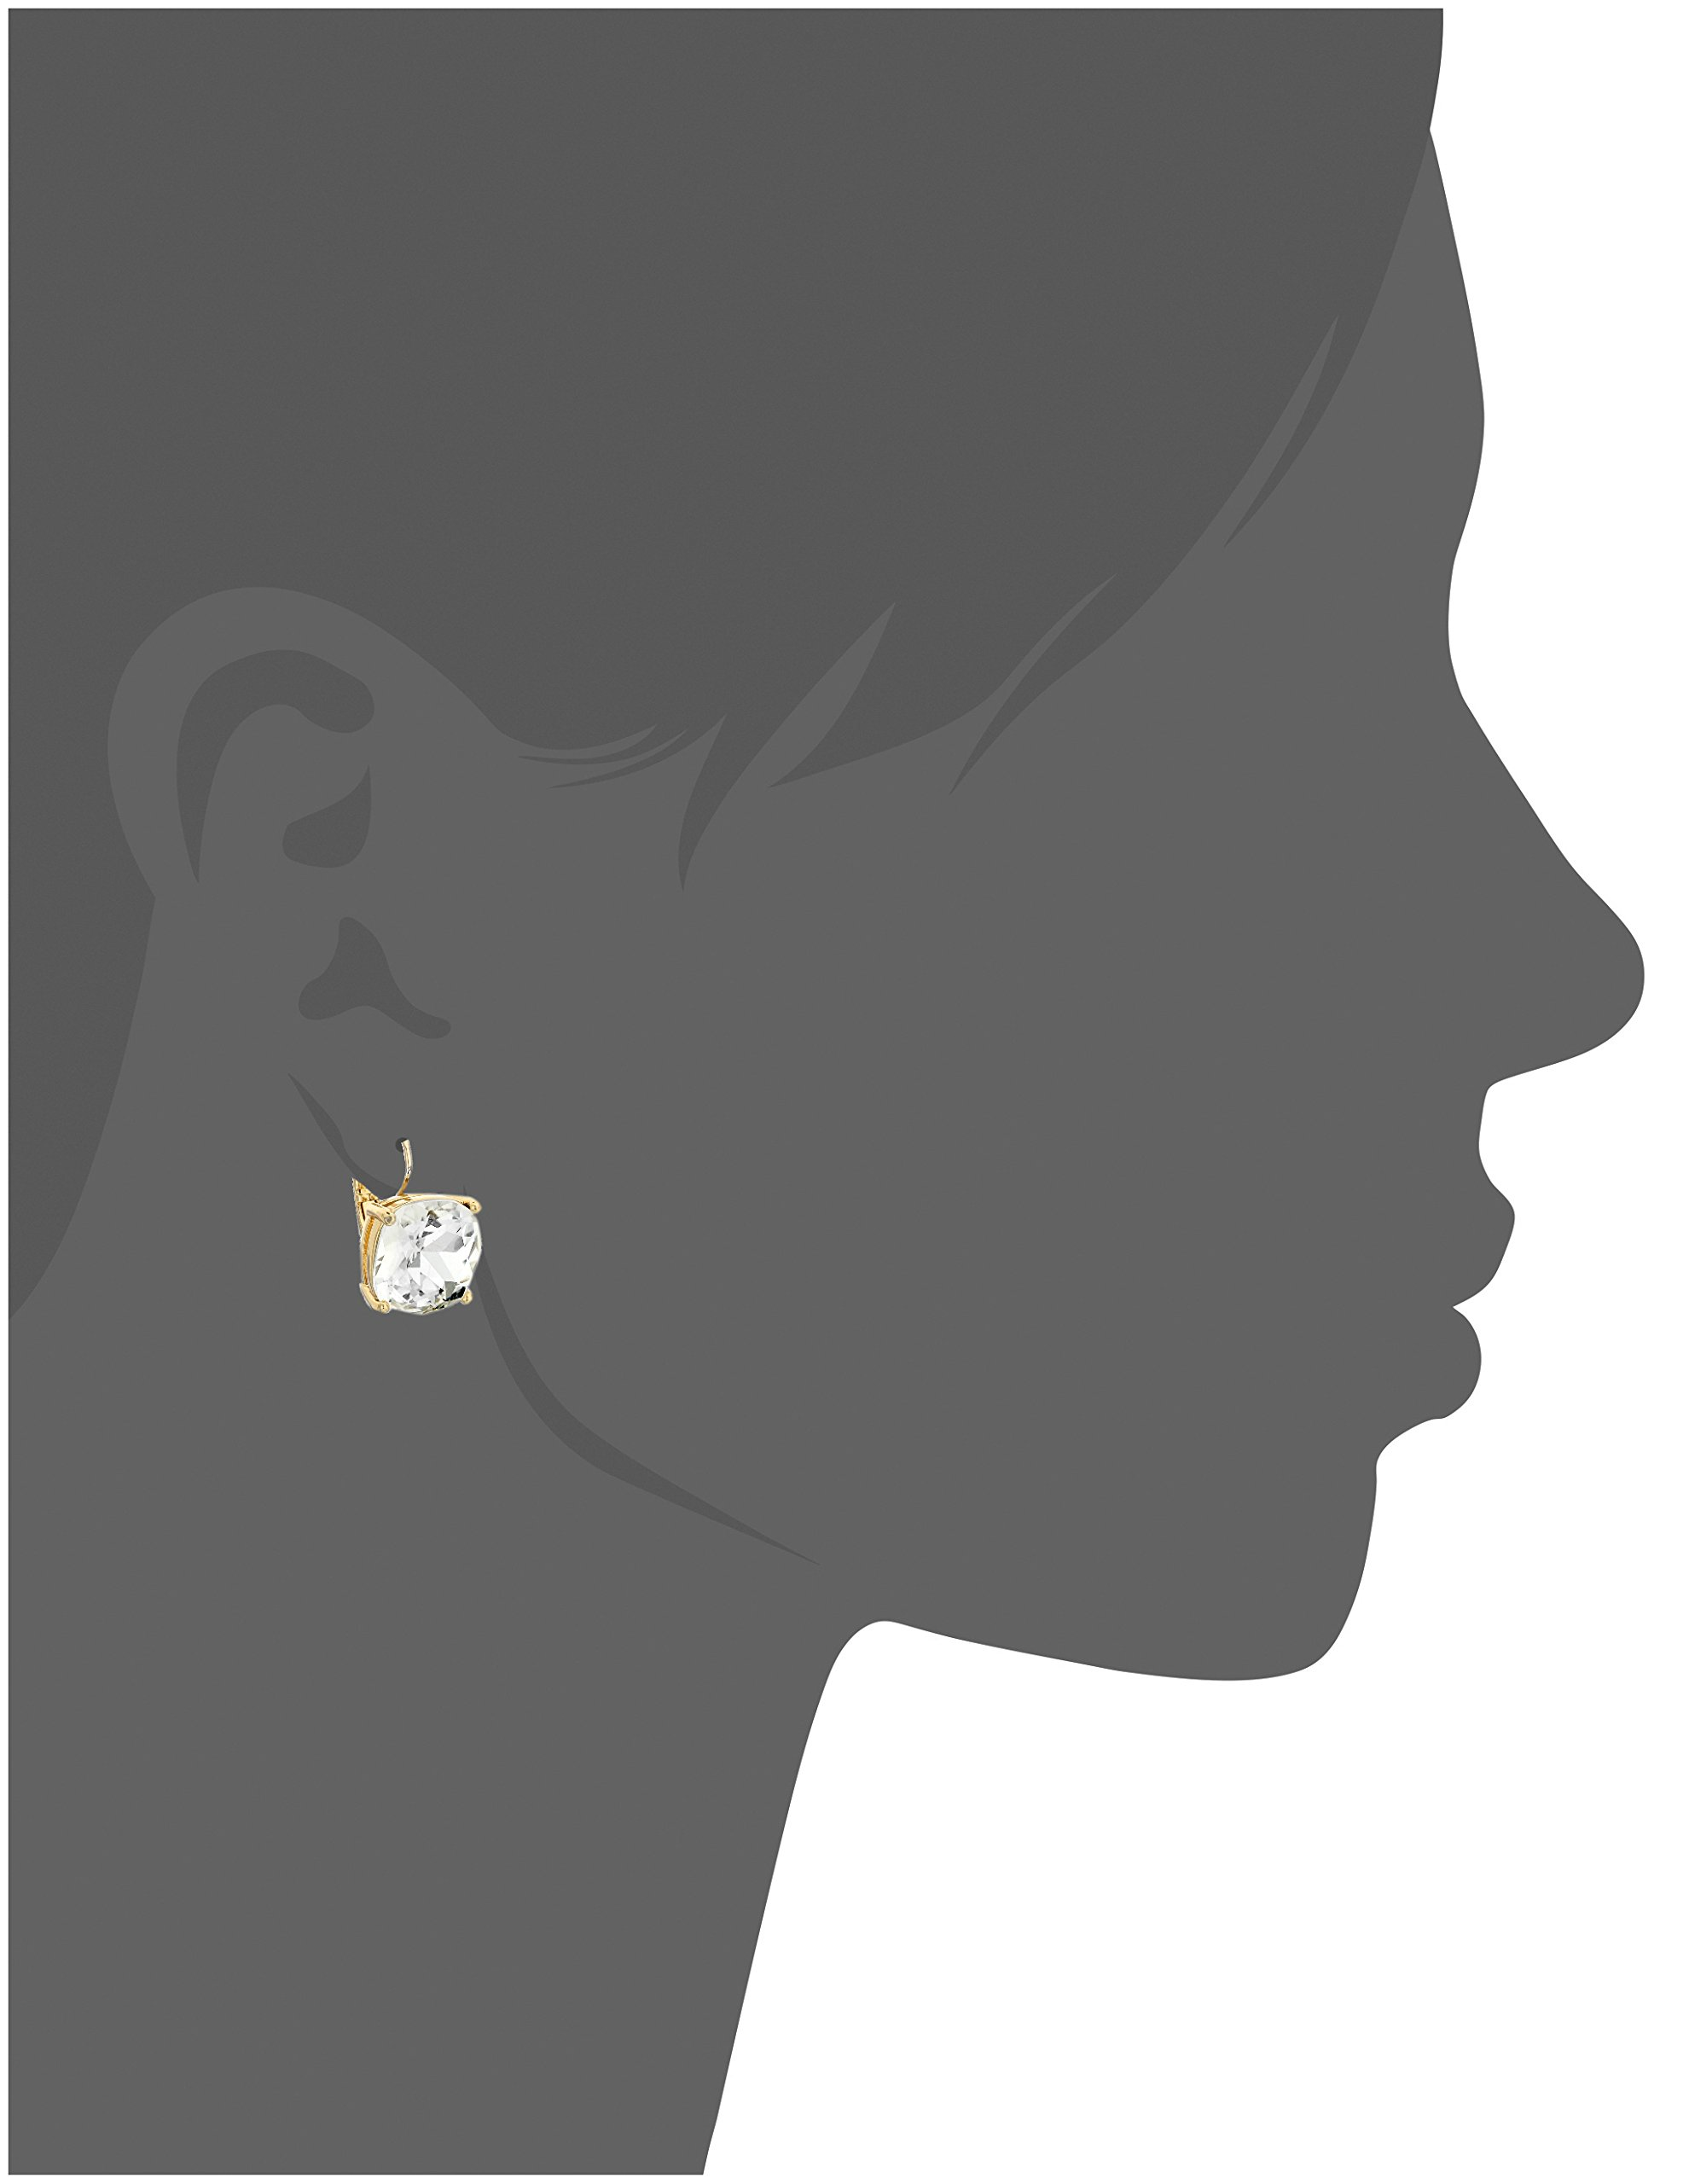 kate spade new york Kate Spade Earrings Small Square Clear Leverback Earrings by Kate Spade New York (Image #2)